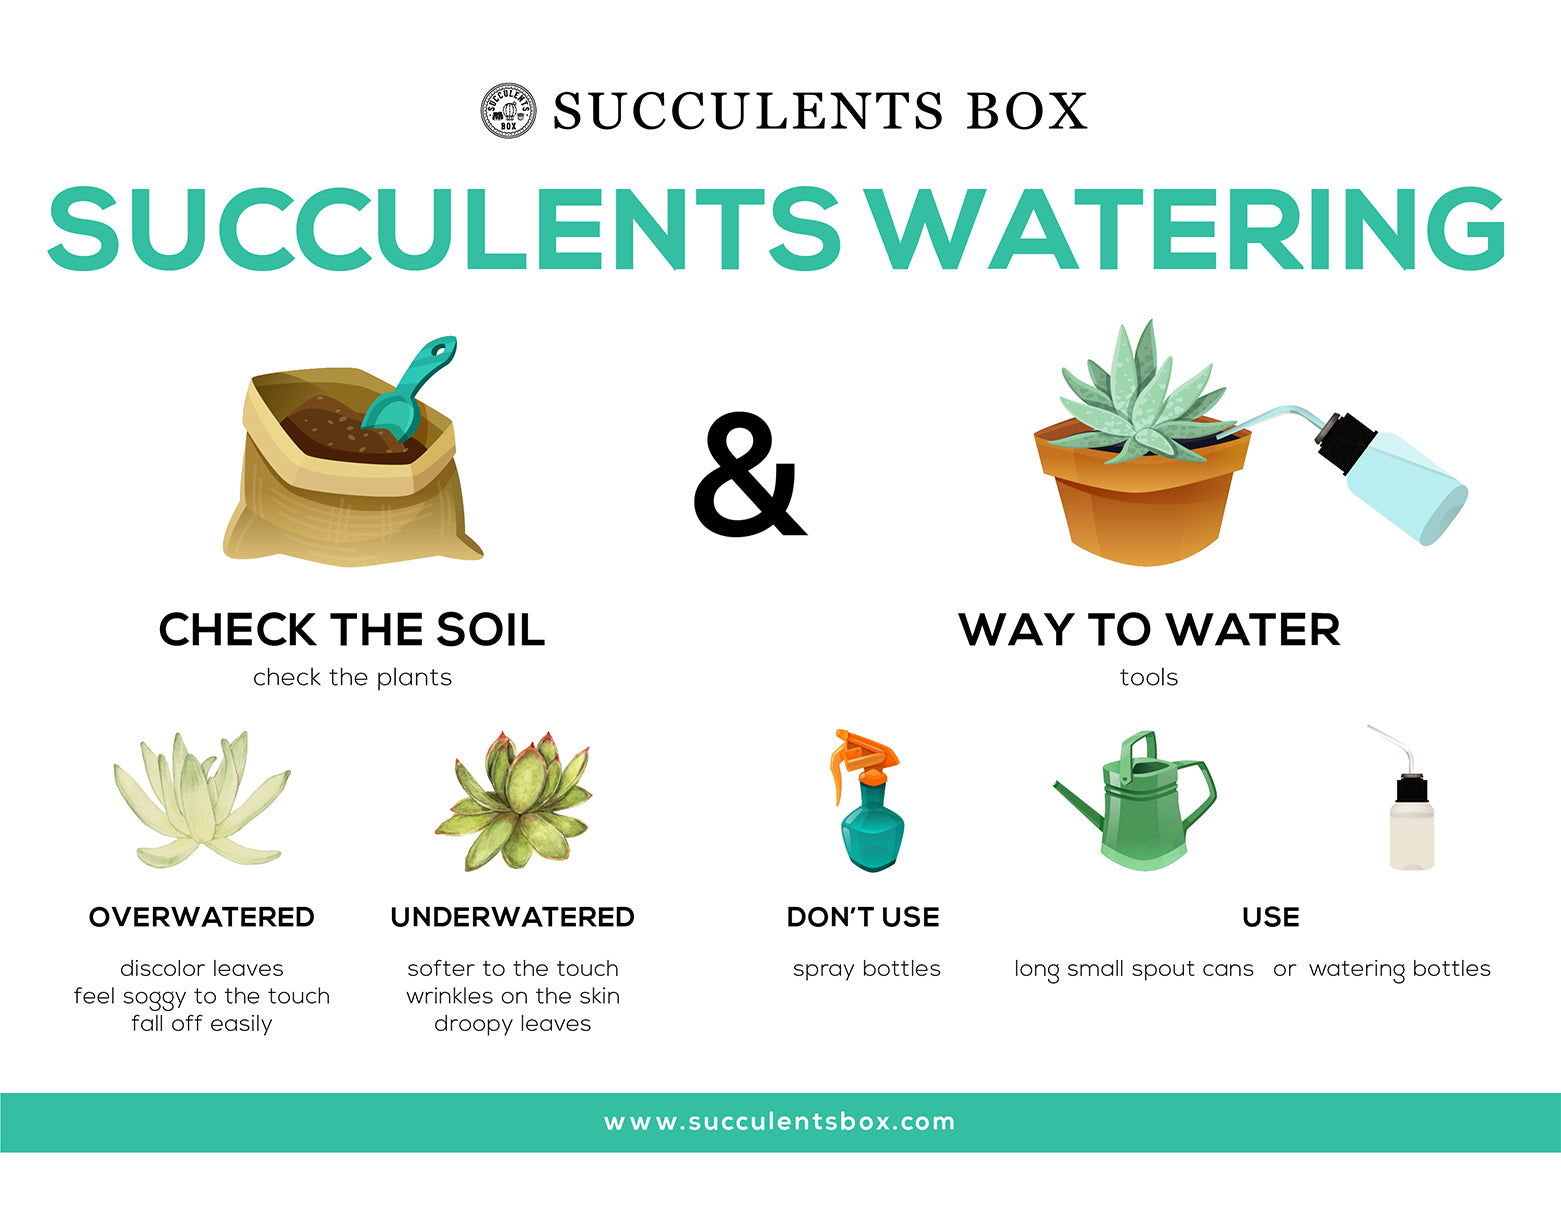 Succulents Watering